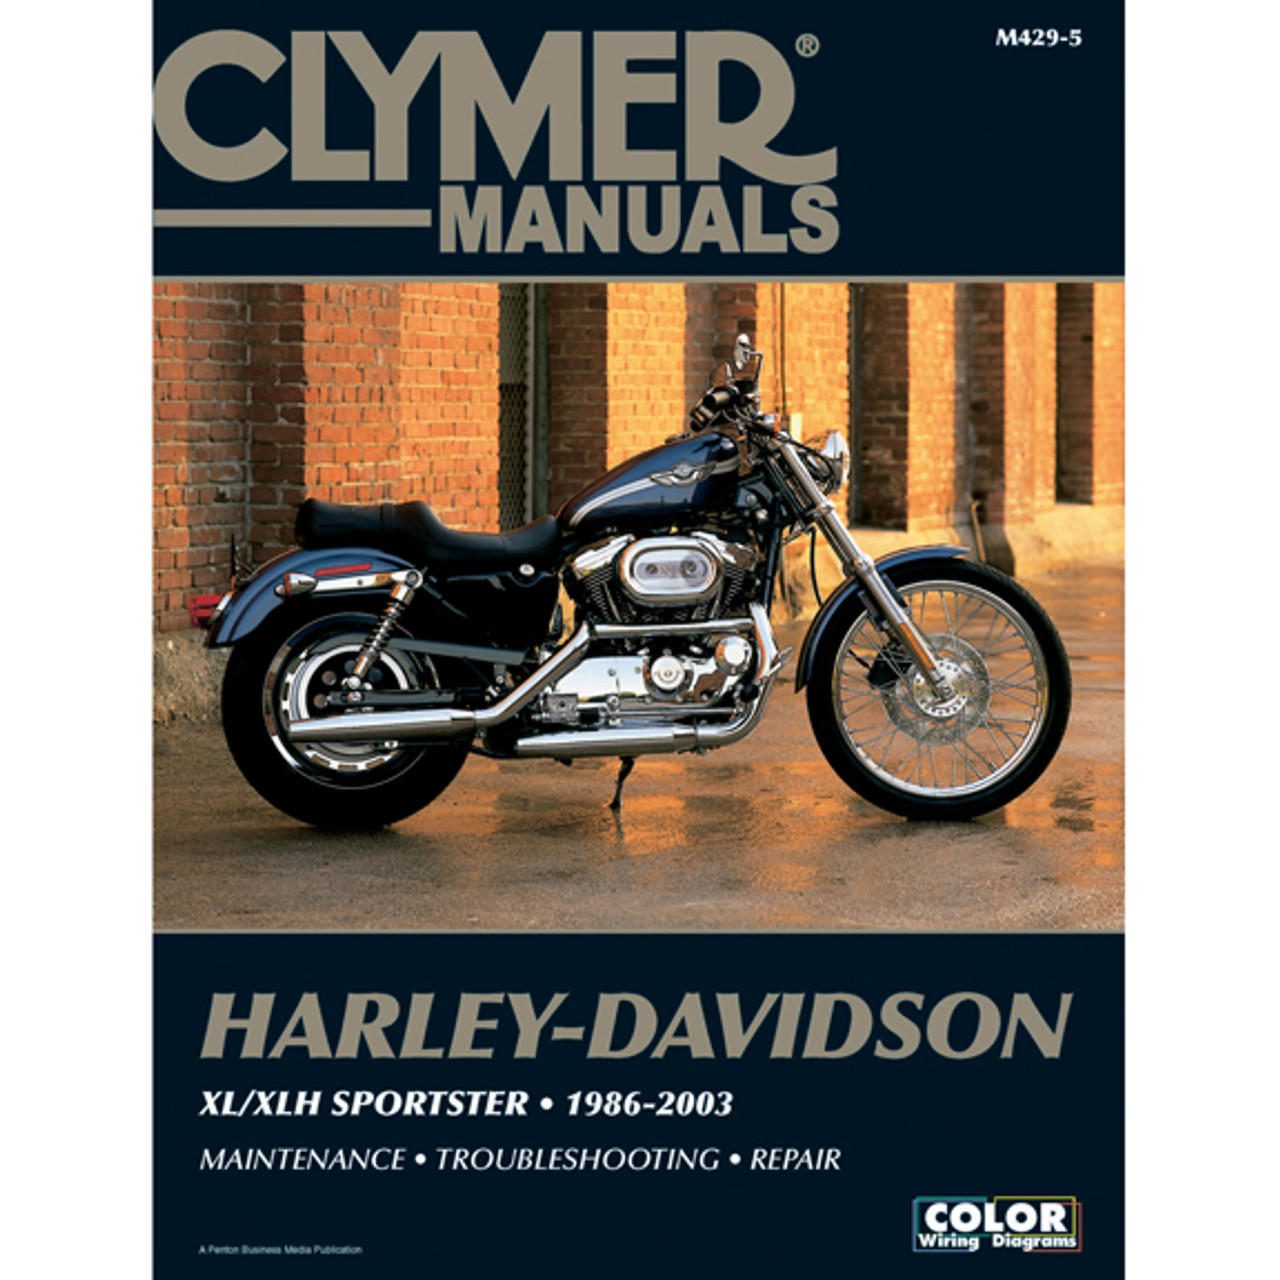 Clymer M429-5 Service Shop Repair Manual Harley XL 883 / 1200 ... on harley-davidson street glide wiring diagram, 1200 custom wiring diagram, simple harley wiring diagram, harley-davidson street glide parts diagram, split unit air conditioner wiring diagram, 2001 sportster ignition system diagram, honda cbr 600 parts diagram, harley-davidson tail light wiring diagram, harley wiring harness diagram, harley-davidson golf cart wiring diagram, harley dyna s ignition wiring diagram, harley starter wiring diagram, chevrolet ssr wiring diagram, ducati 998 wiring diagram, harley-davidson motorcycle parts diagram, harley-davidson ultra classic wiring diagram, triumph speed triple wiring diagram, harley-davidson gas tank diagram, 1999 ford explorer electrical wiring diagram, harley sportster oil line diagram,